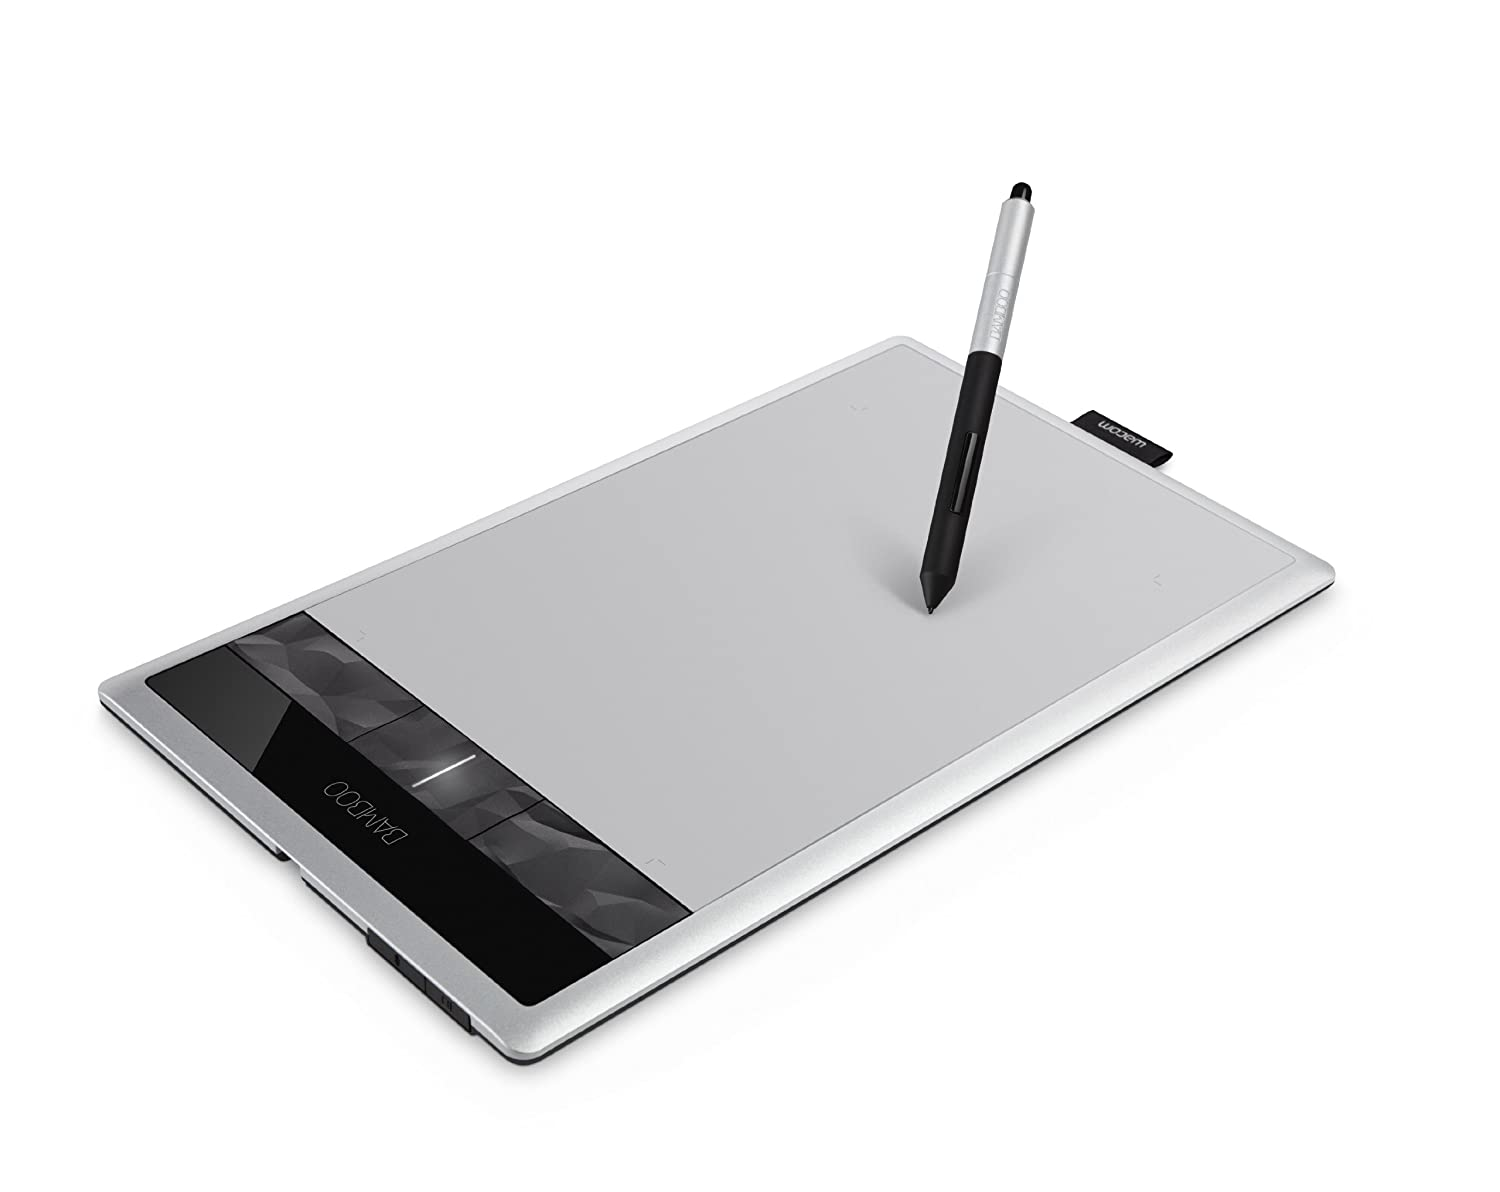 WACOM BAMBOO WINDOWS 8.1 DRIVERS DOWNLOAD